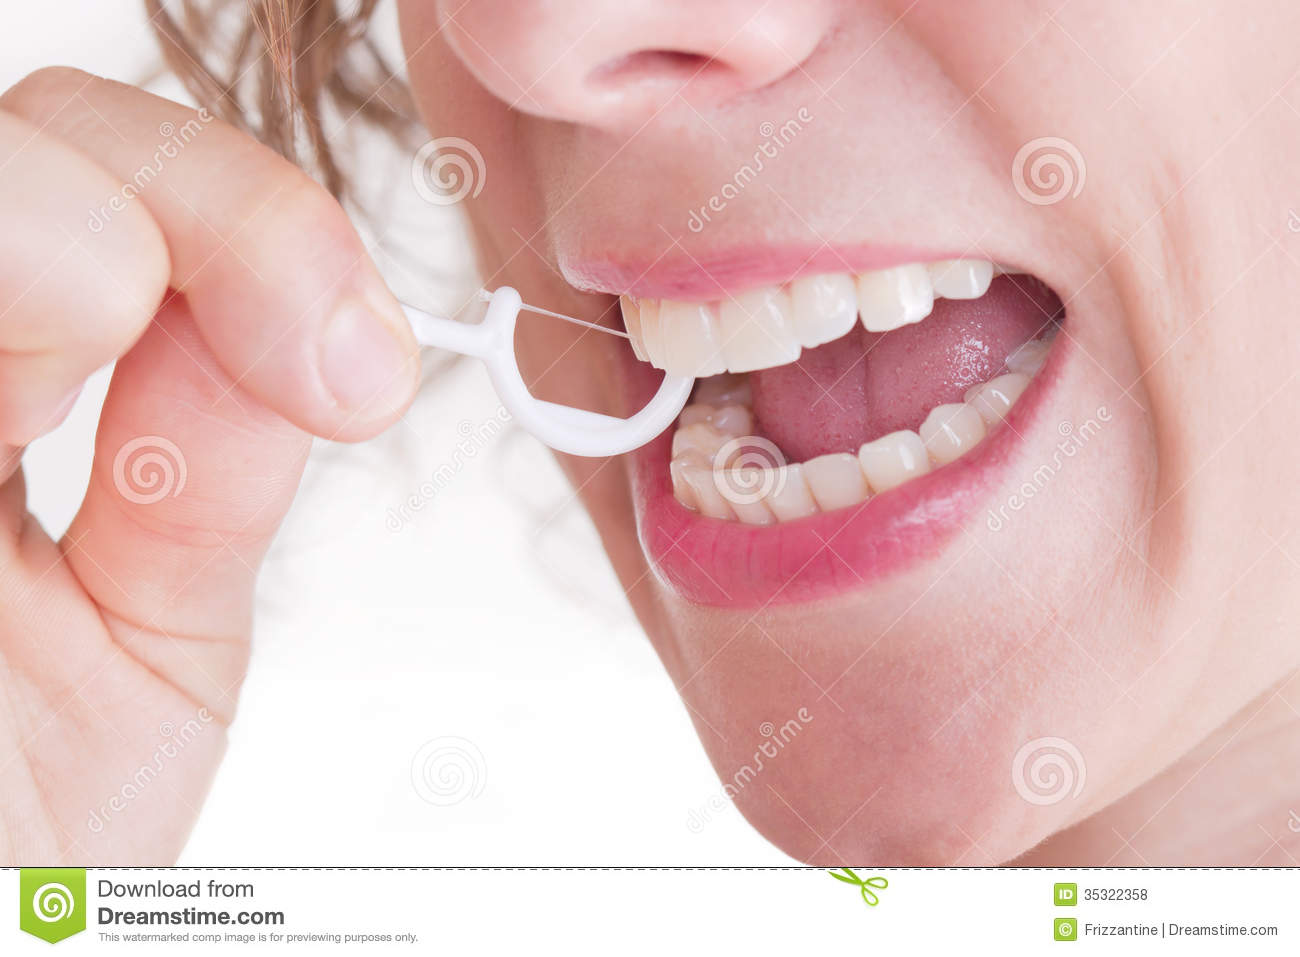 dental-care-dental-floss-woman-her-teeth-35322358.jpg